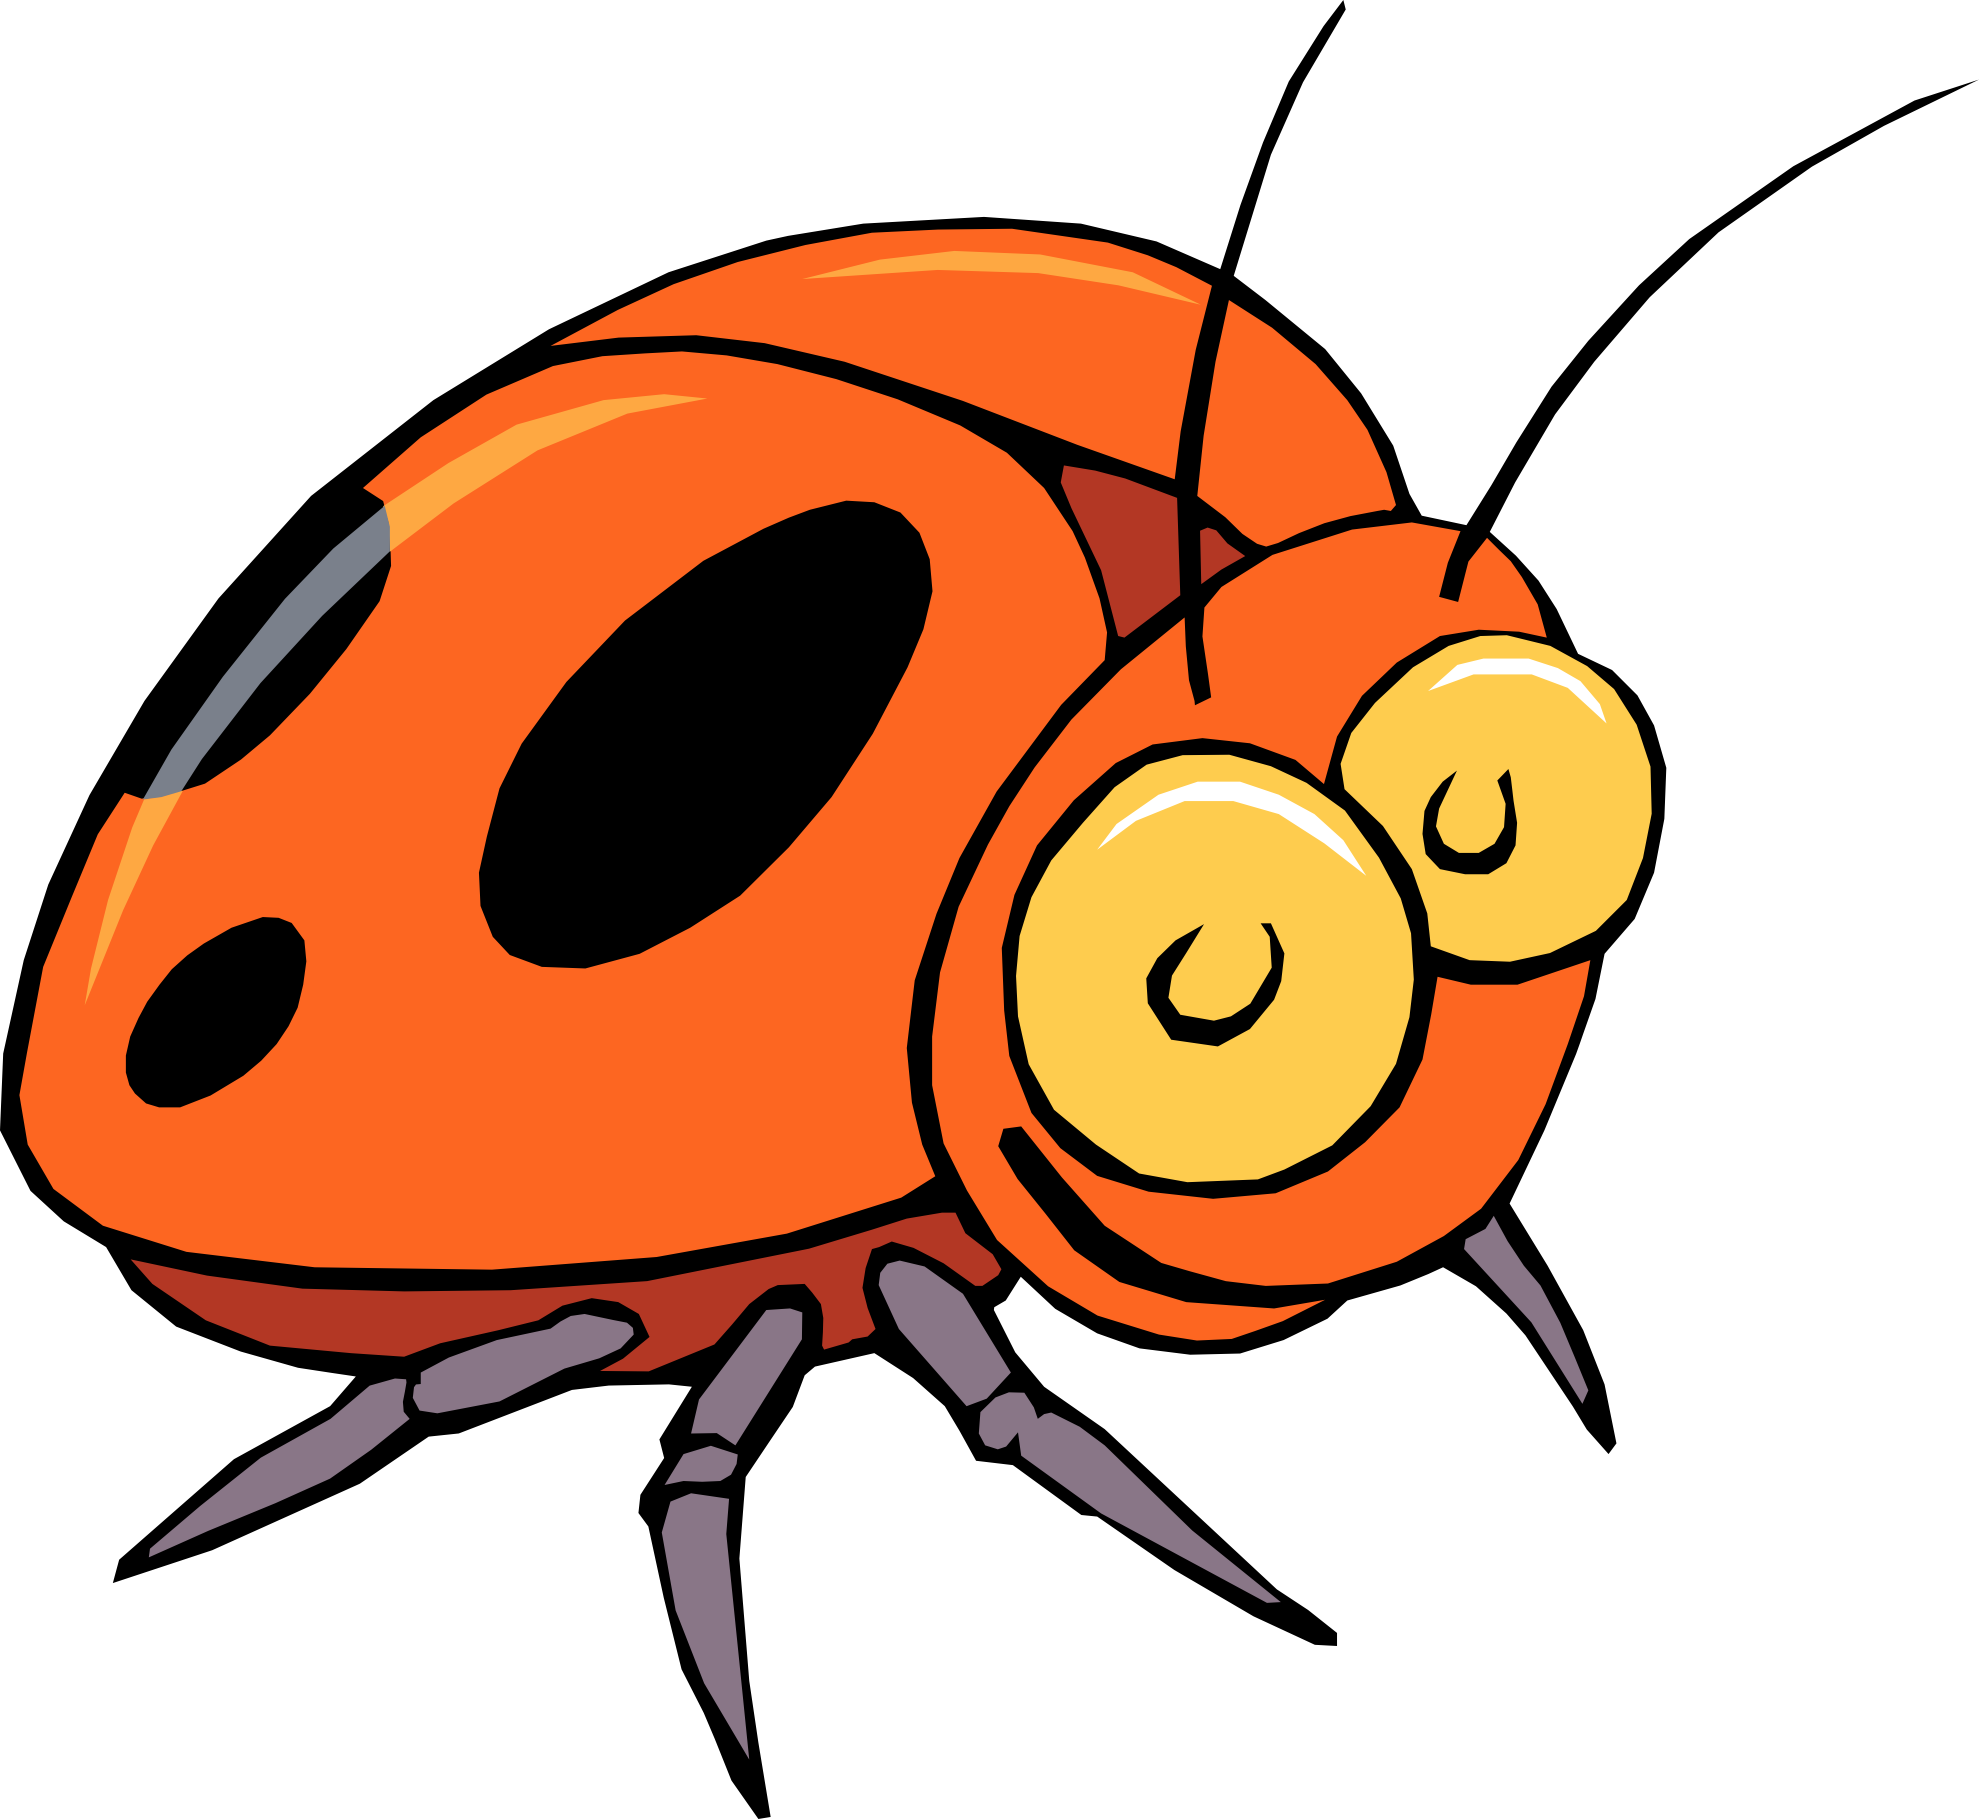 Glitch clipart beatle Bug Images insect Bug kid